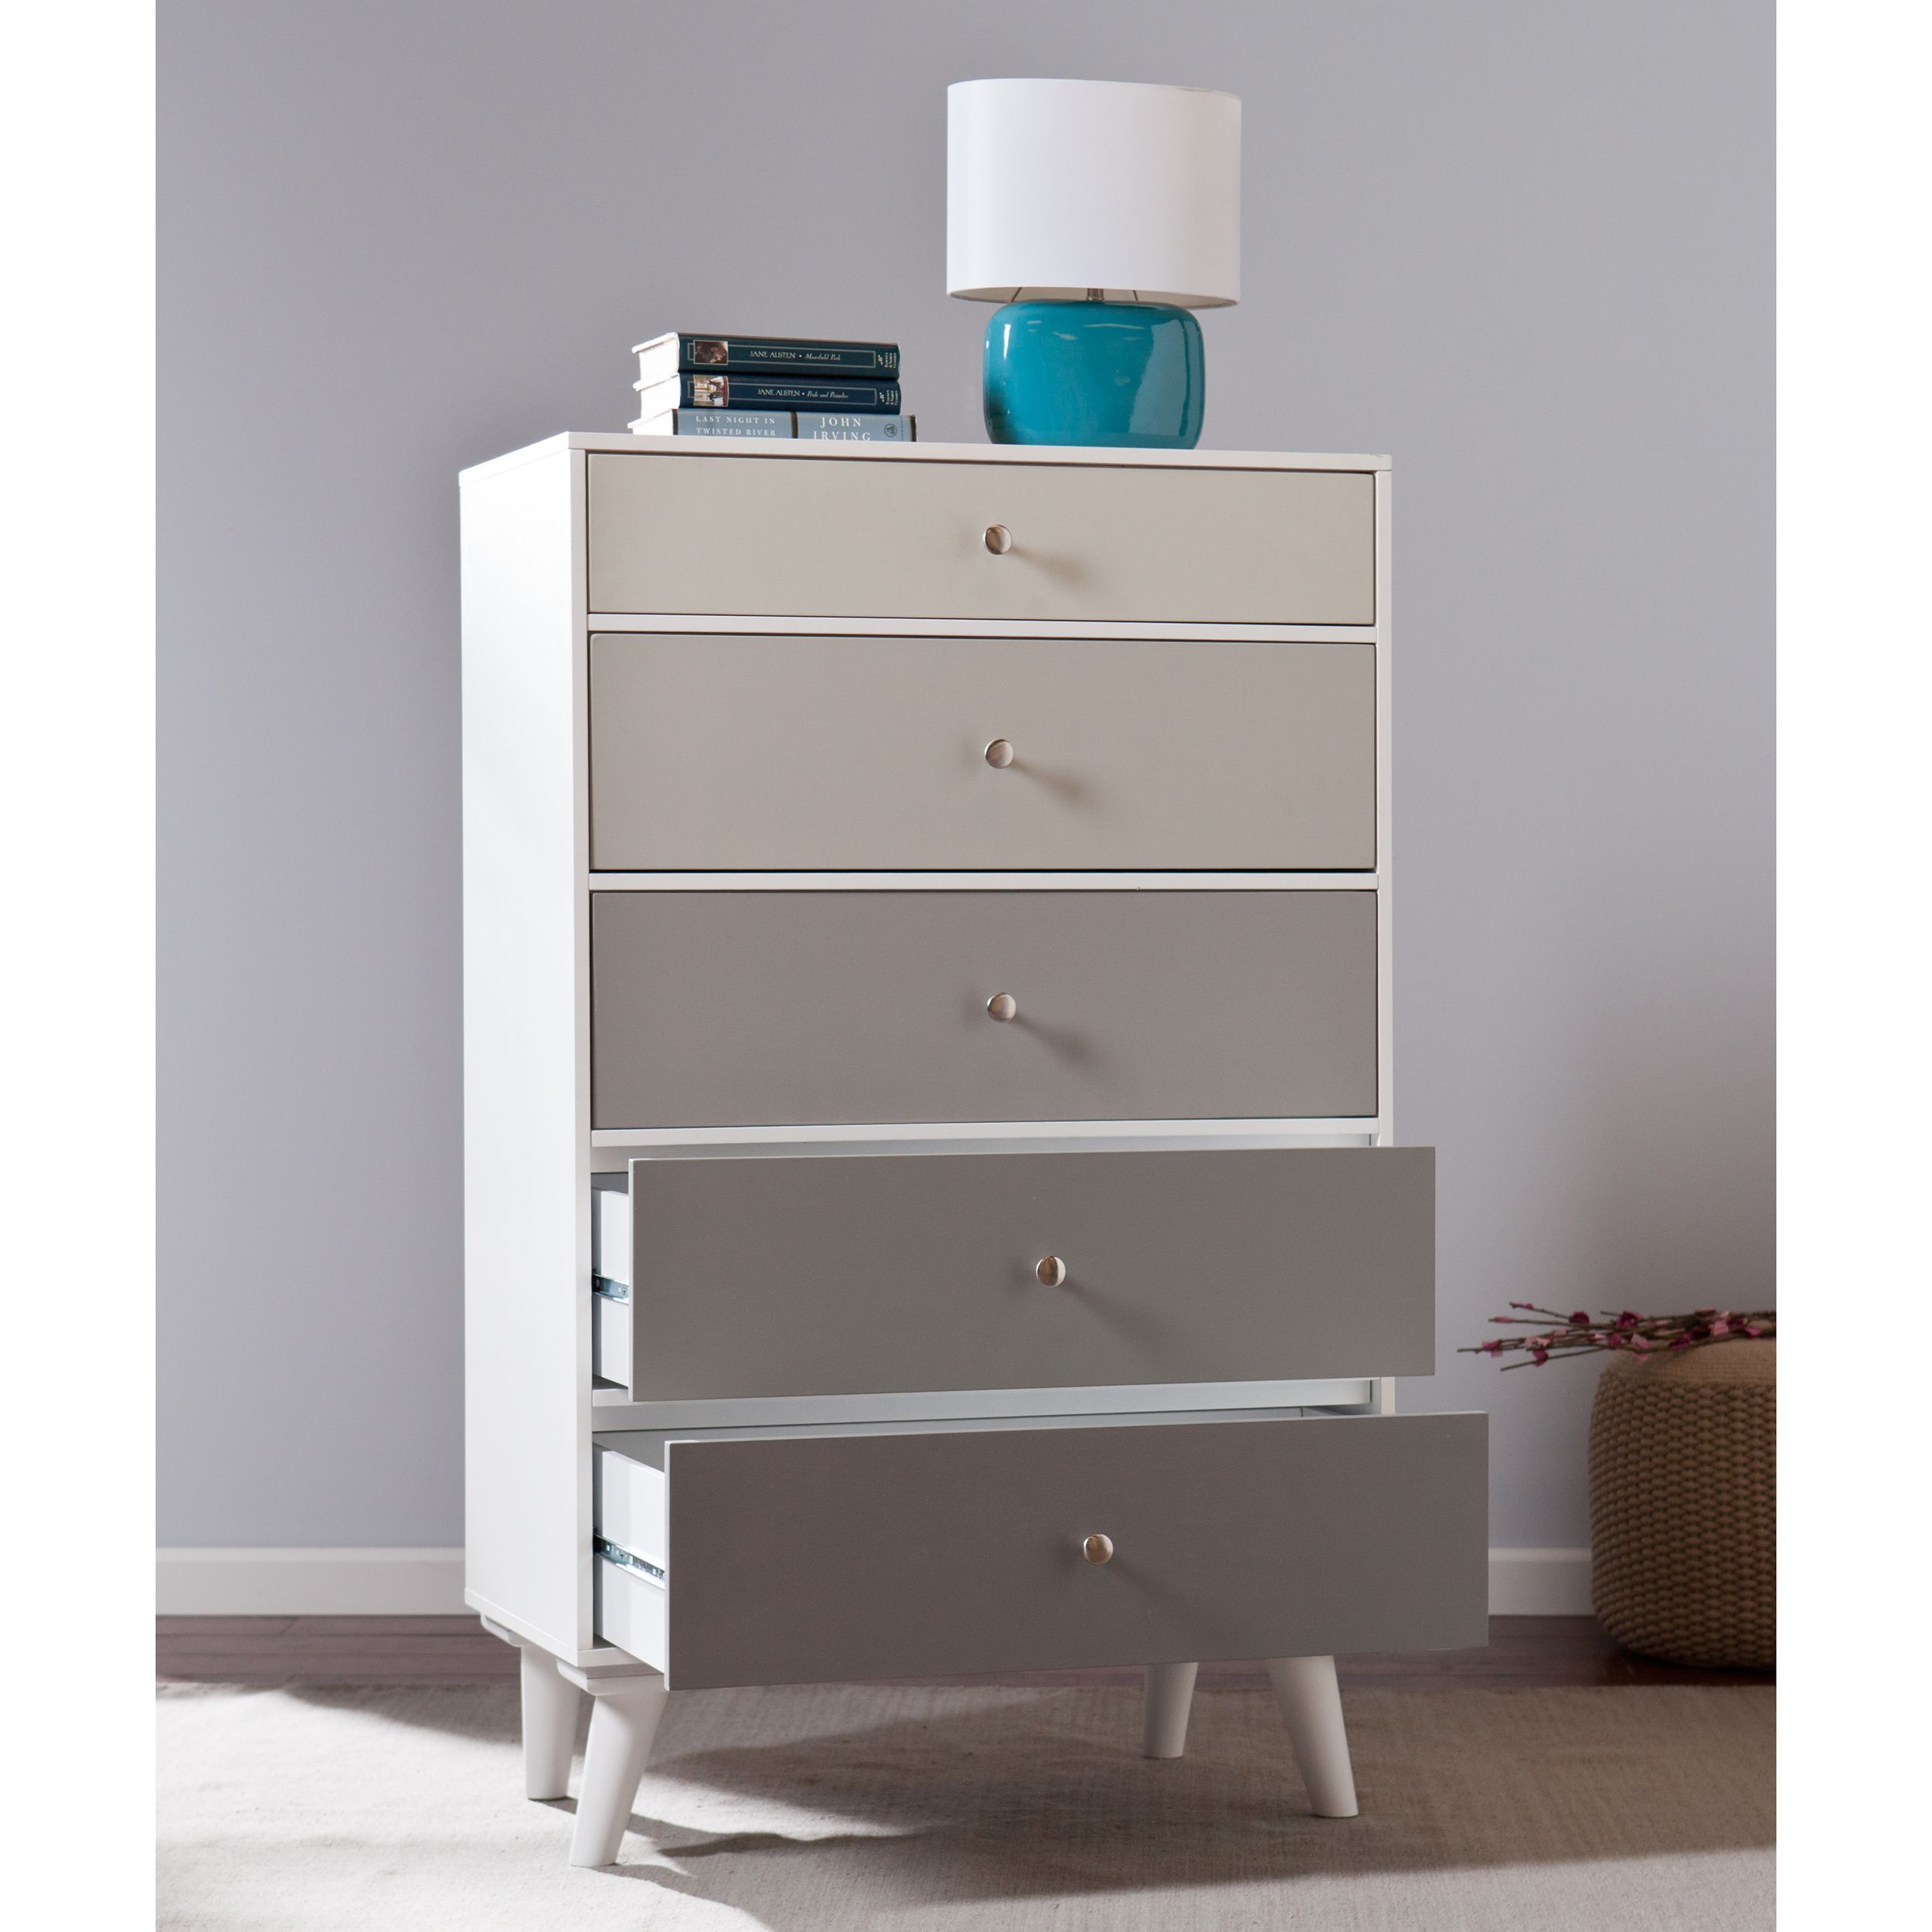 Home goods sale furniture free shipping on orders over at